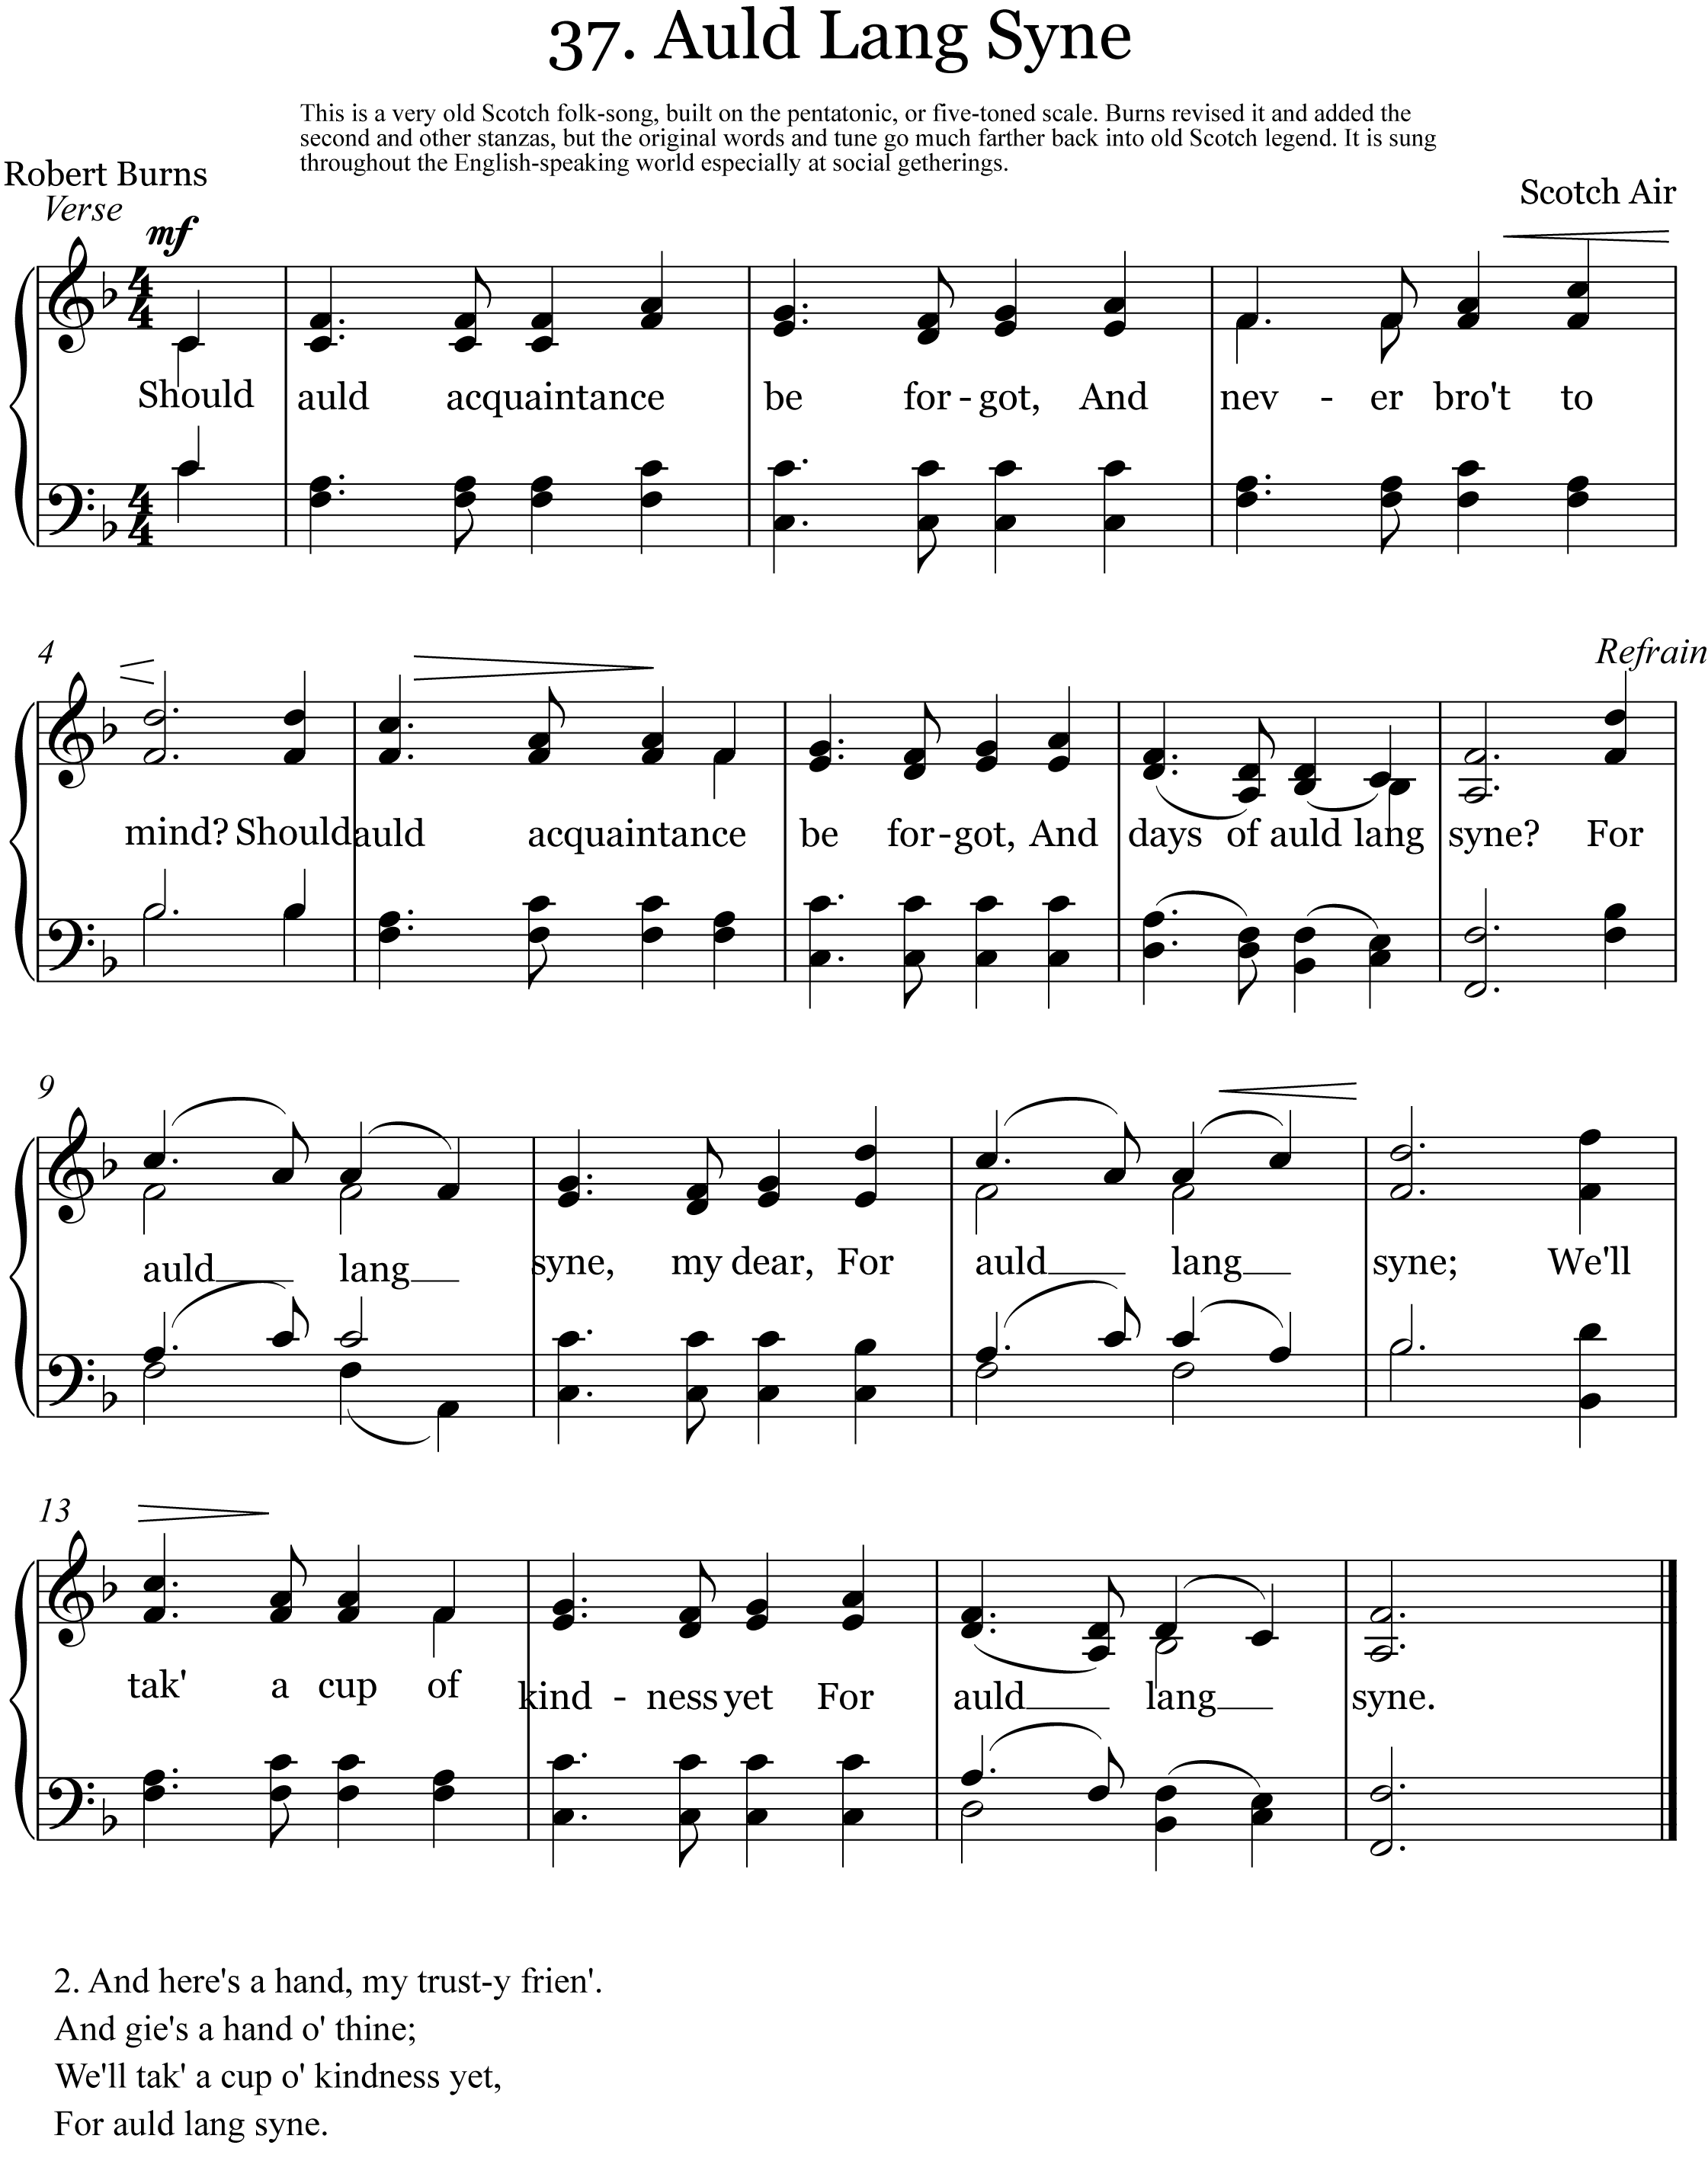 File:37 AULD LANG SYNE.png - Wikimedia Commons